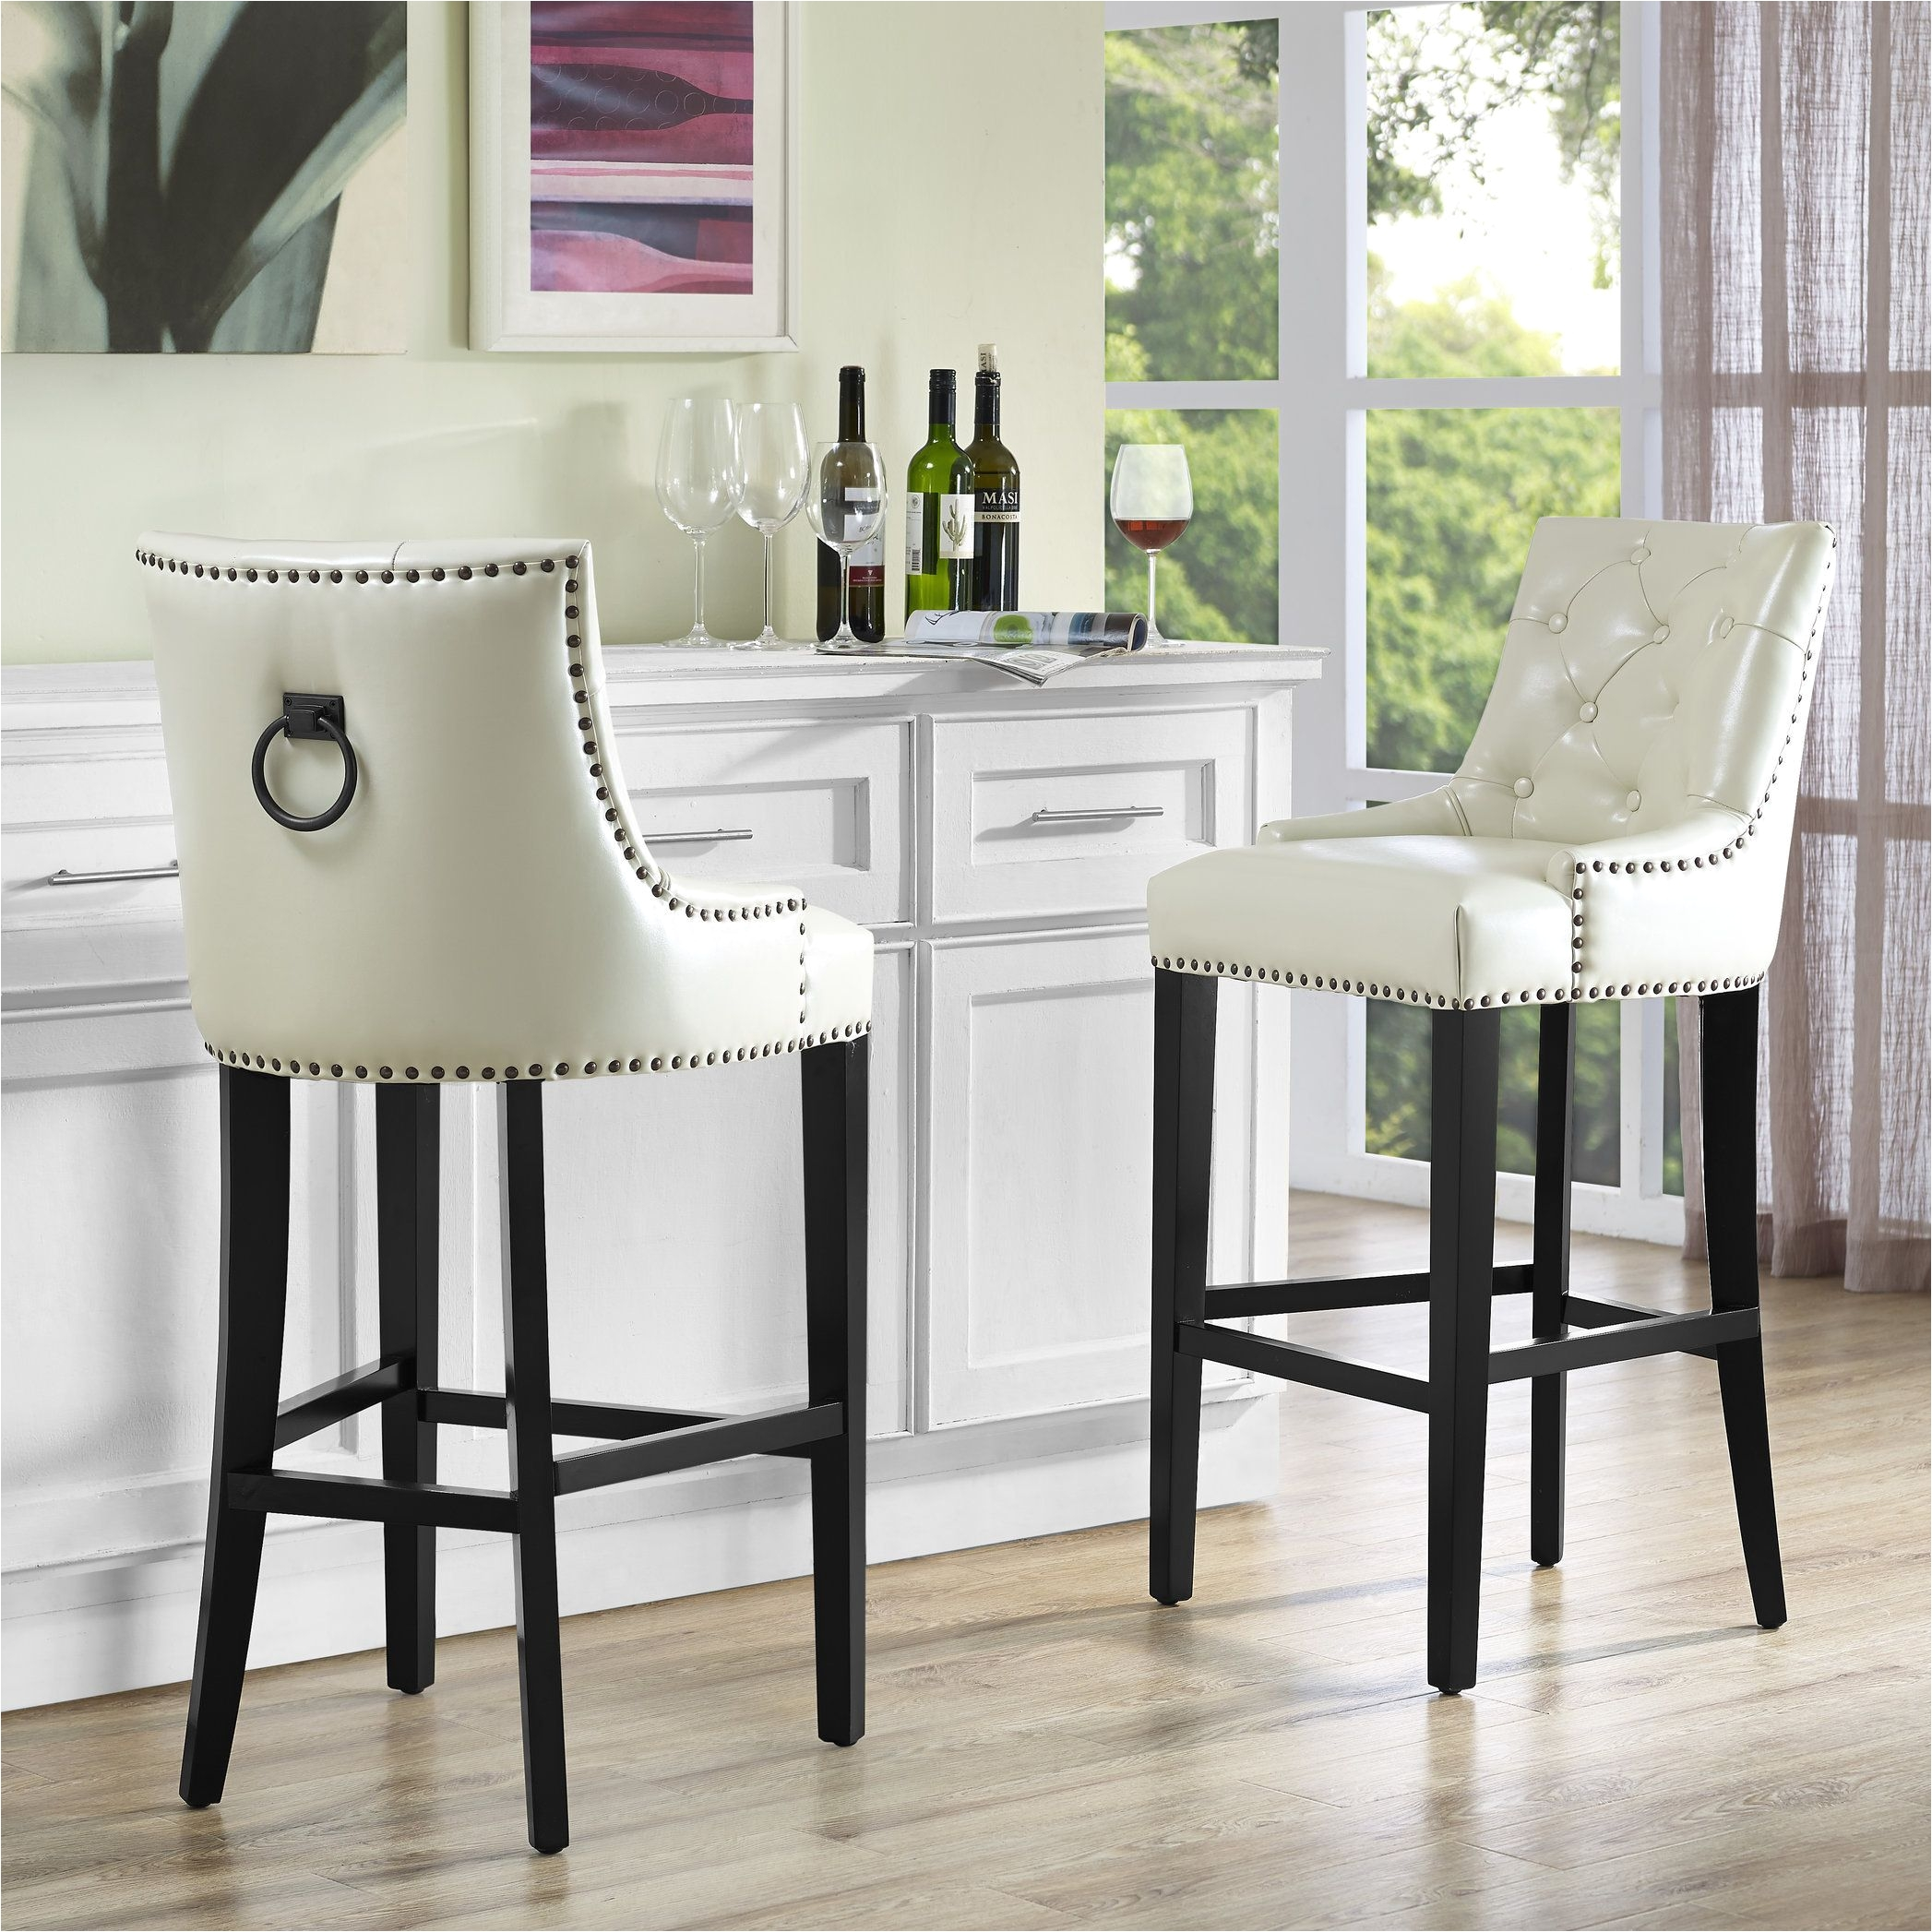 Nicole Miller Bar Chairs This Barstool Features Individually Hand Applied Copper Nail Heads